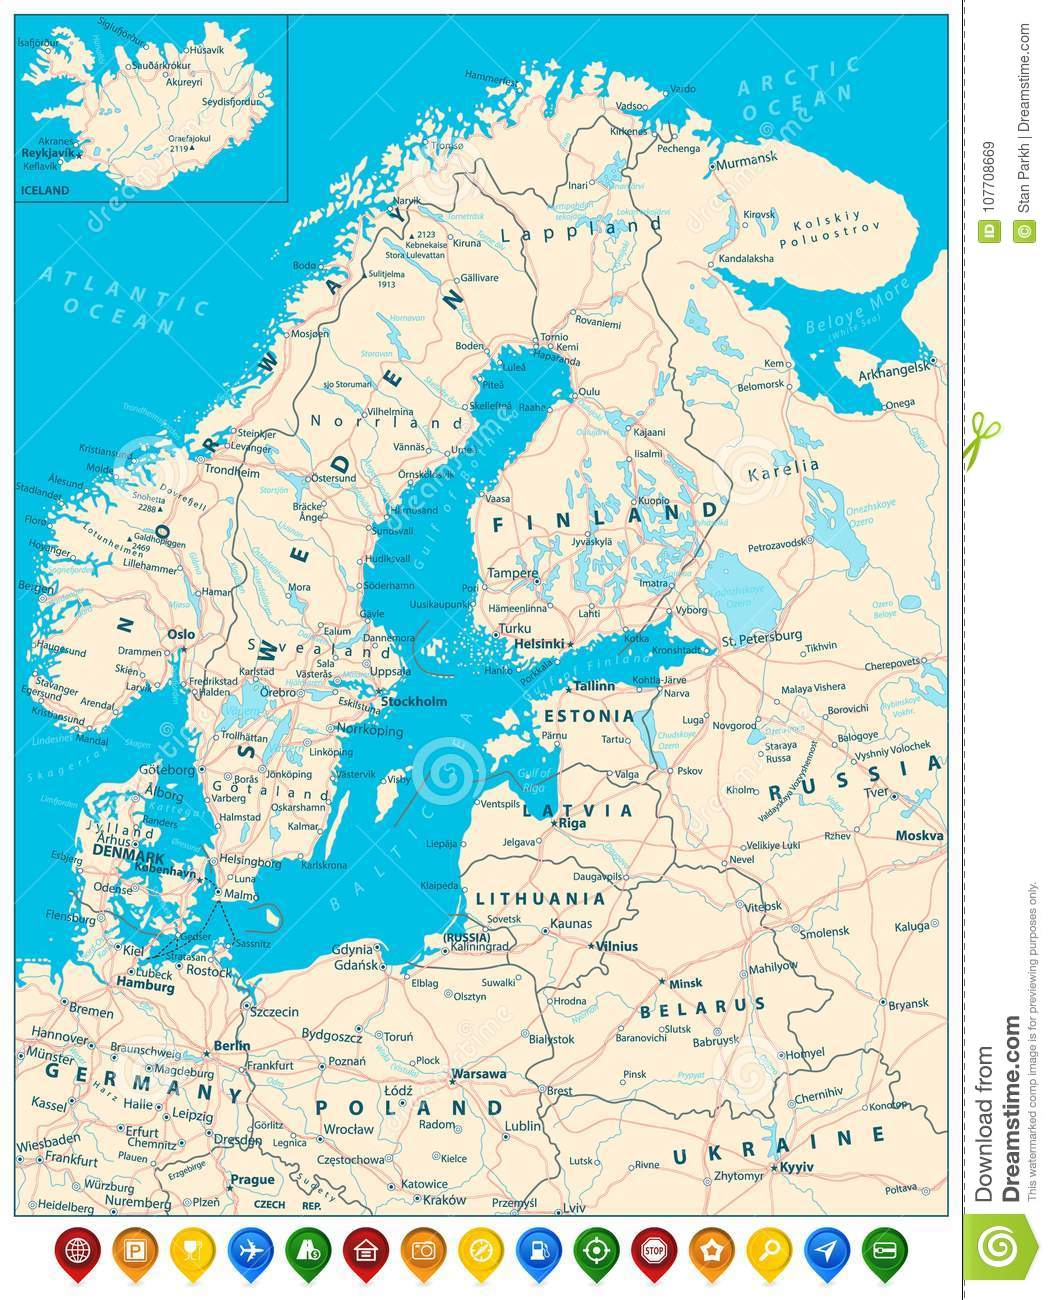 Northern Europe Road Map And Colorful Map Pointers Stock Vector